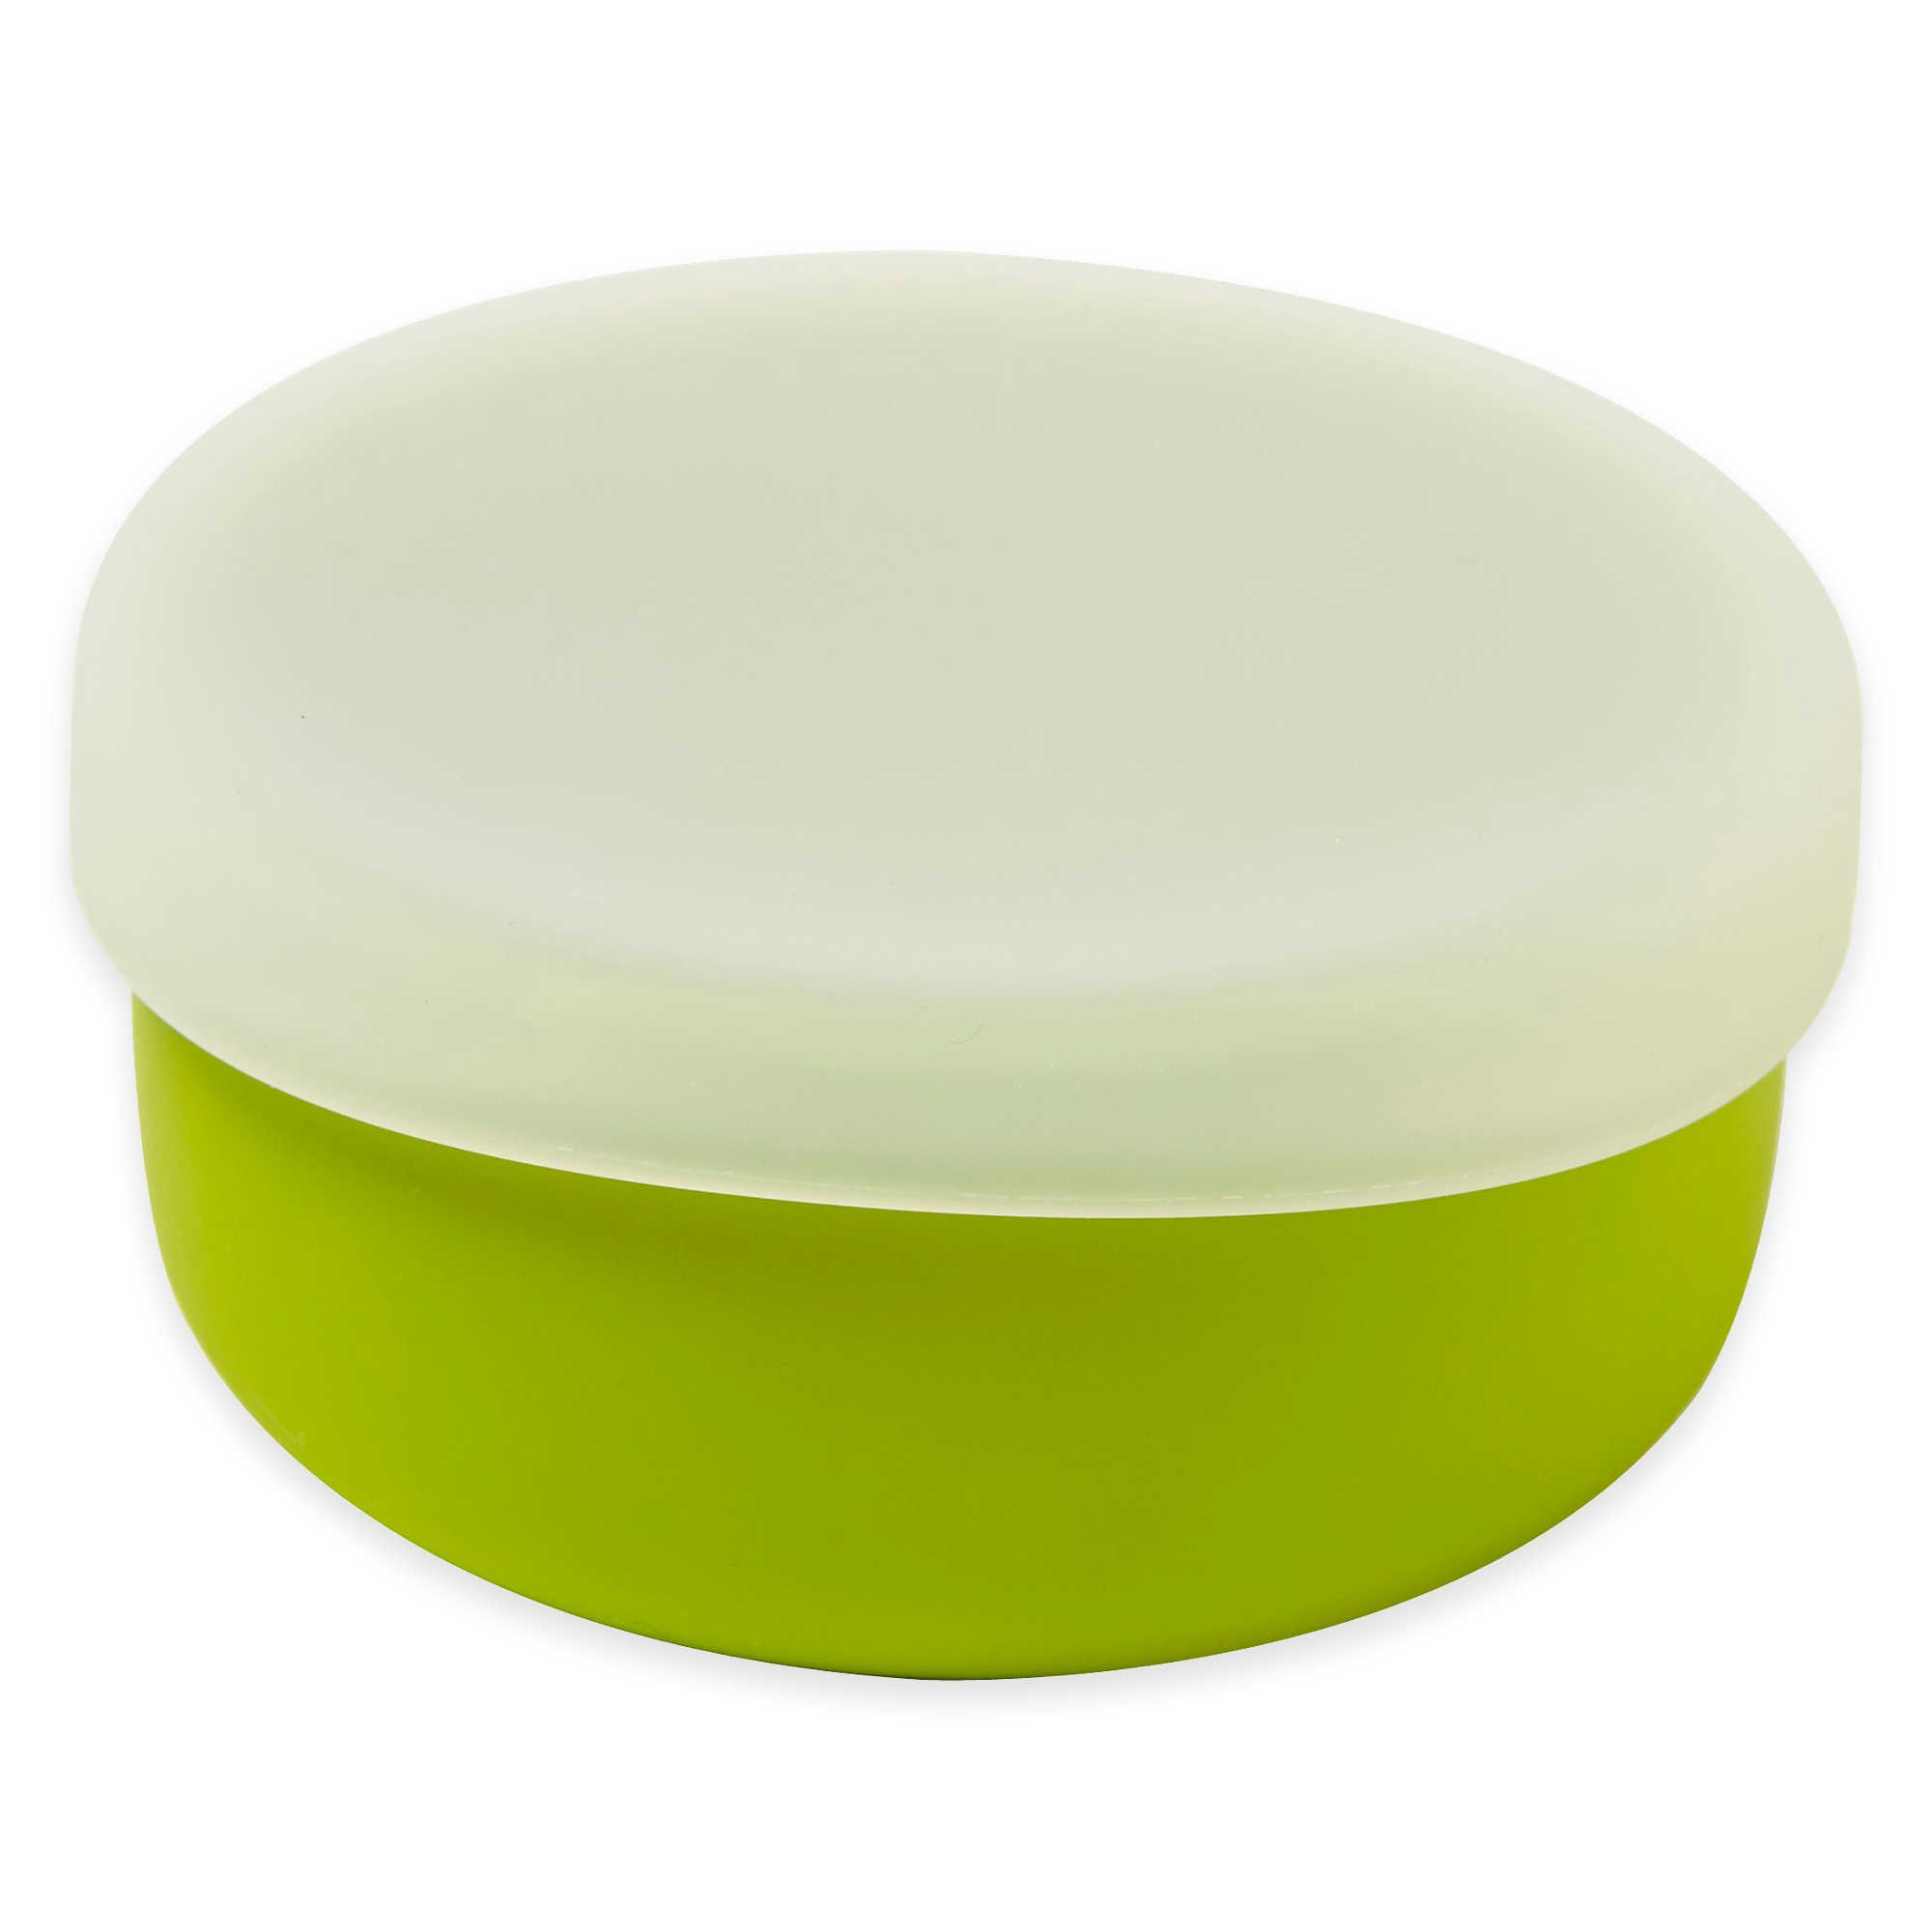 Modern Twist 4.85 oz. Silicone Bowl with Lid in Green (3 Packs) by Generic (Image #1)